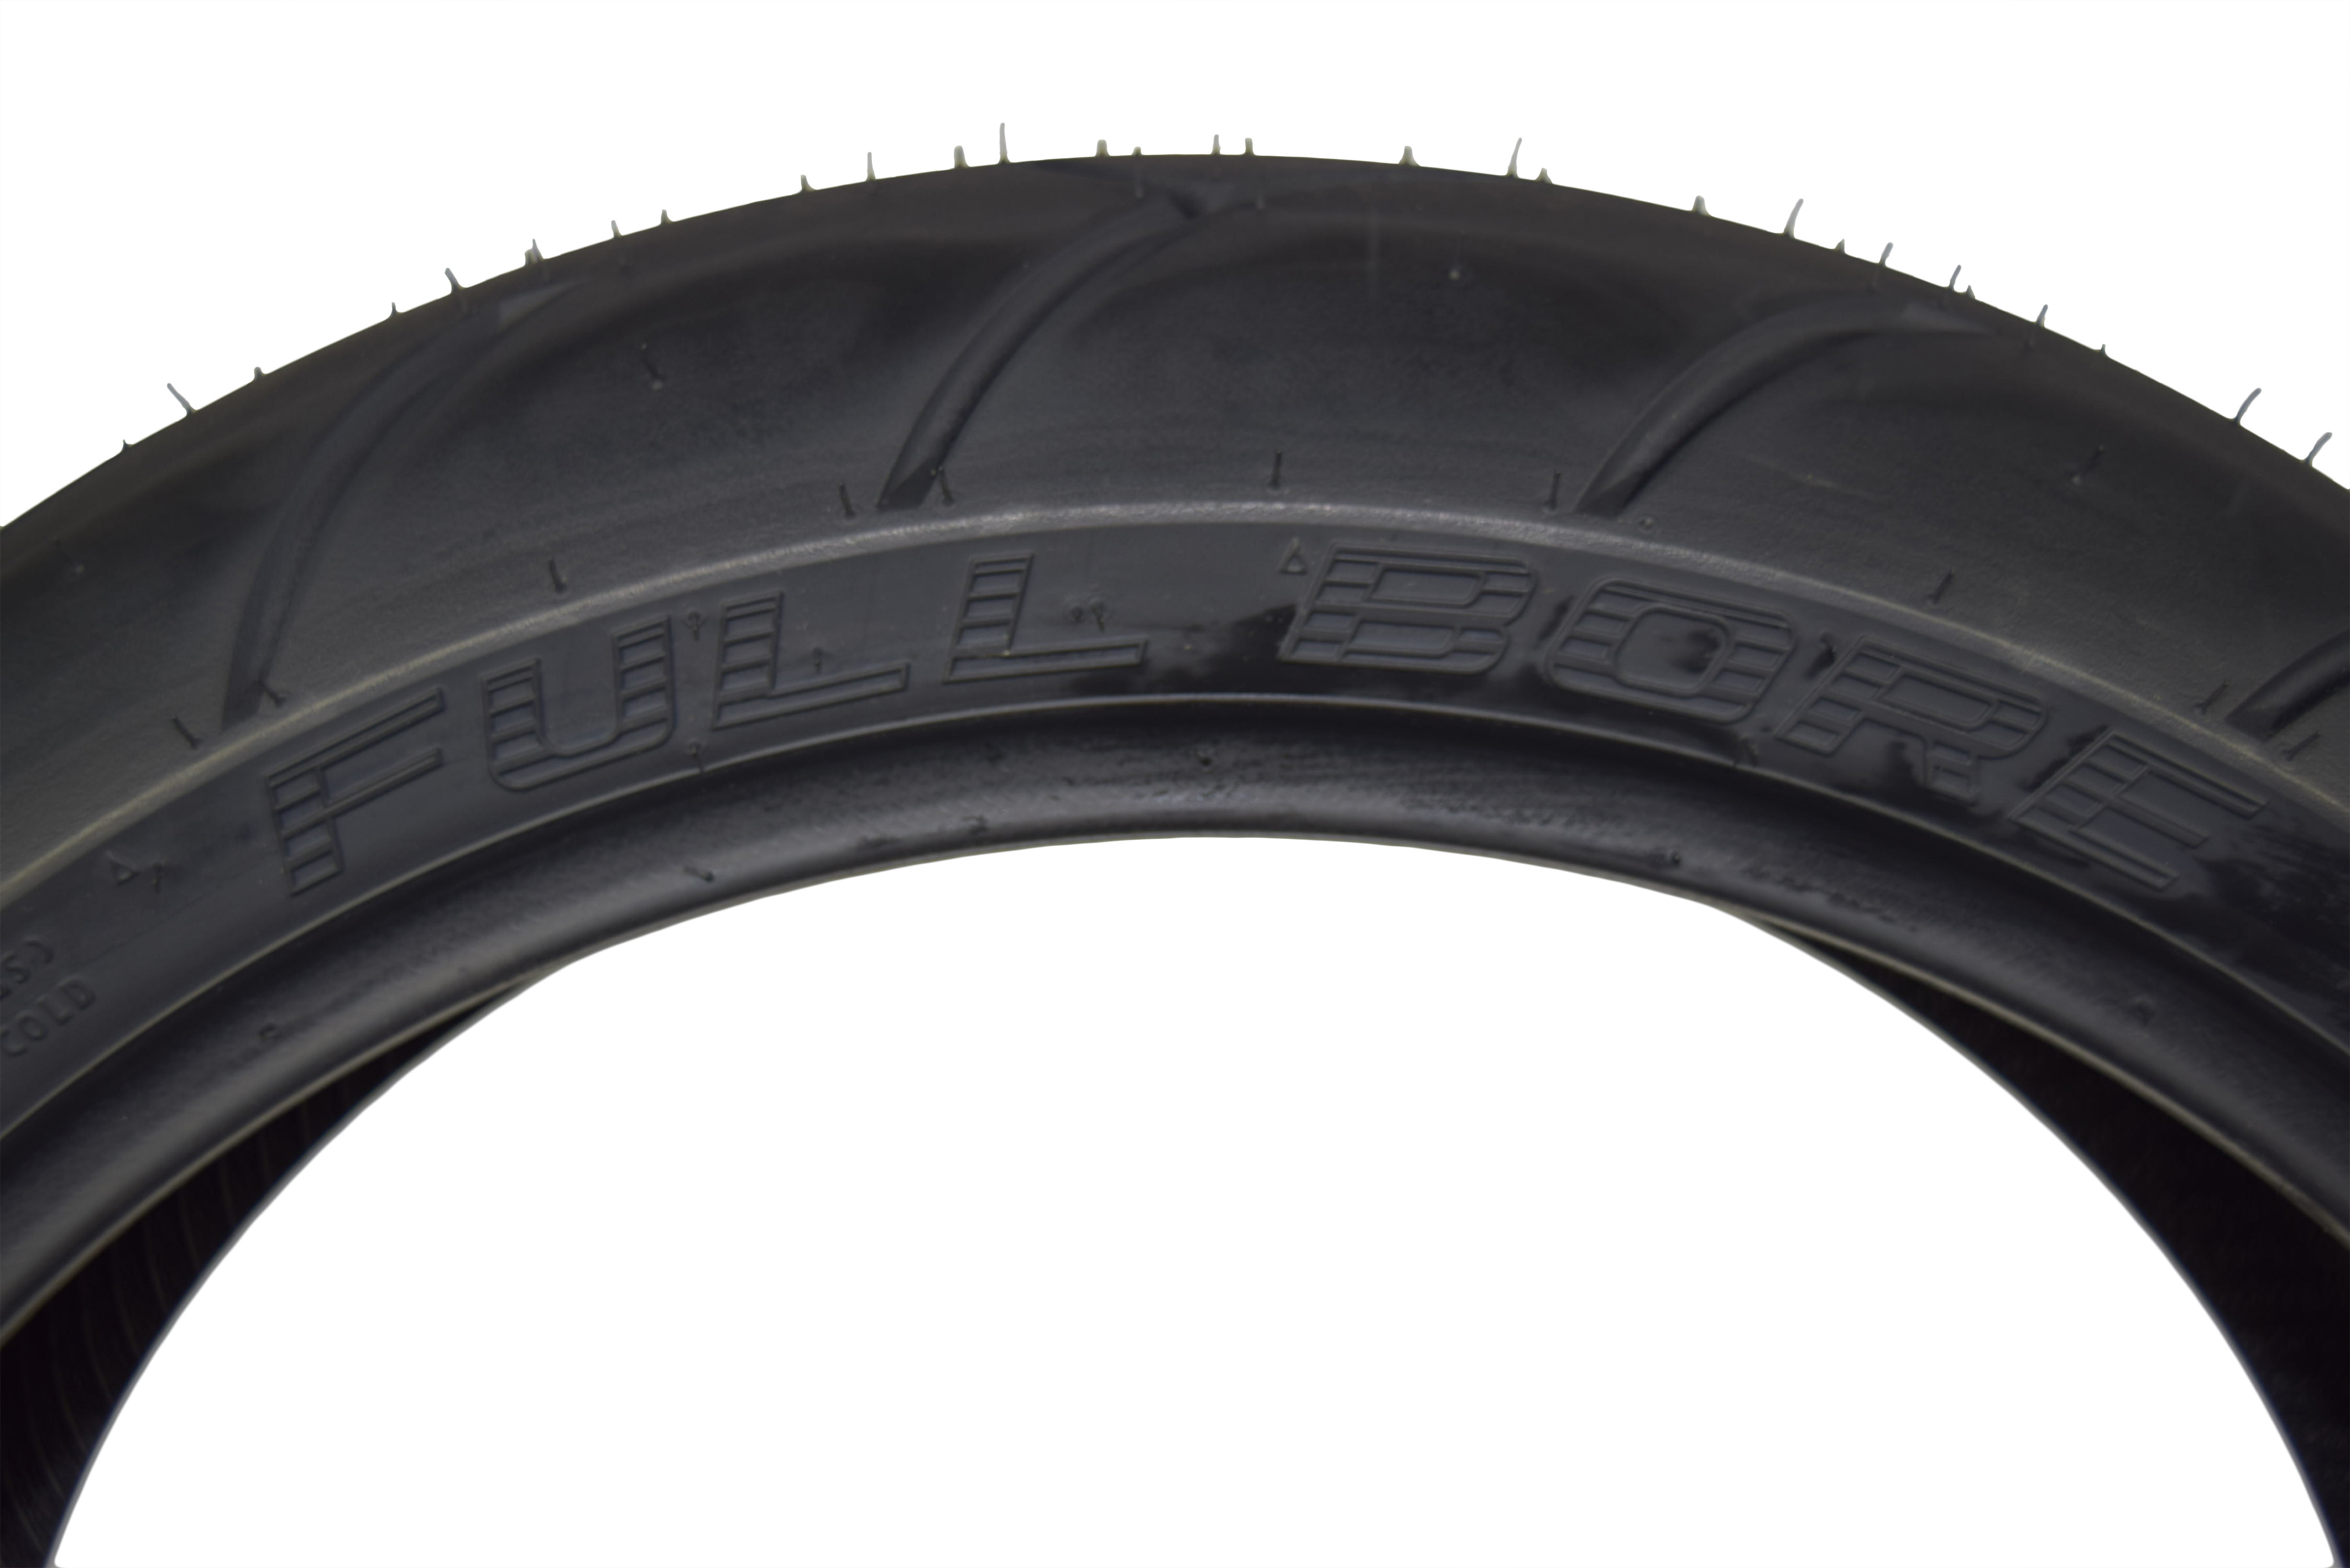 Full-Bore-120-70-17-F-190-50-17-R-Radial-Sportbike-Motorcycle-Tires-image-8